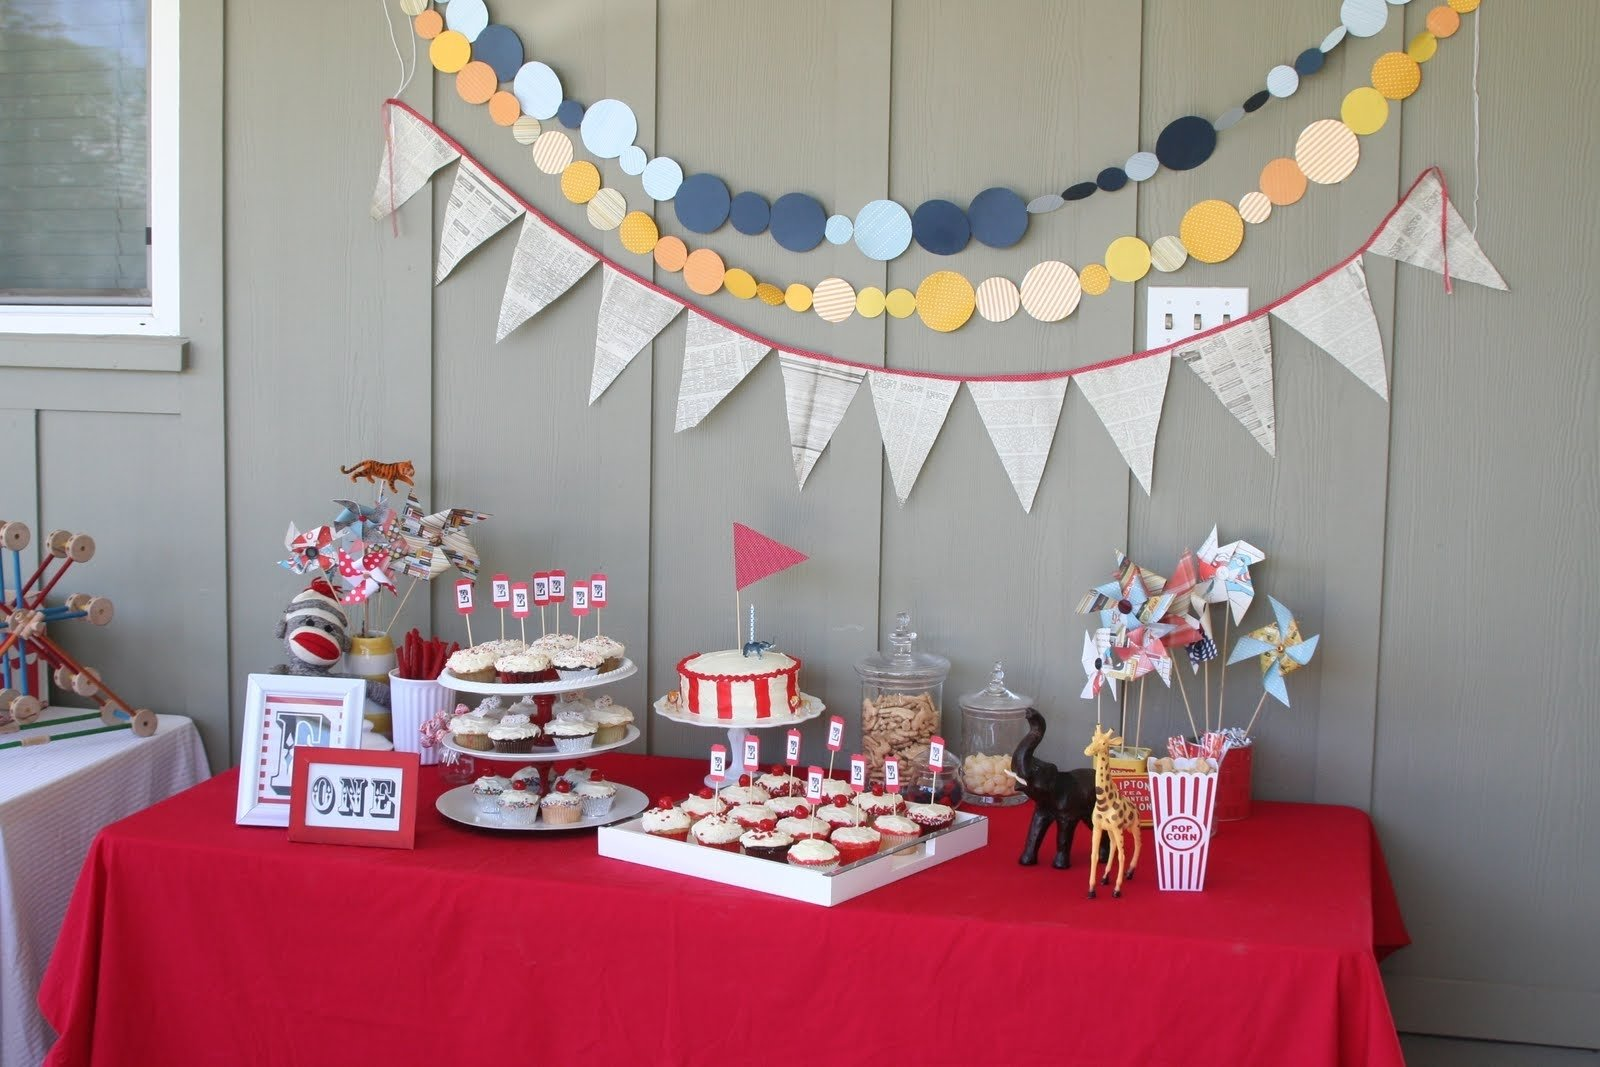 10 Stunning Decorating Ideas For A Birthday Party birthday party decoration decoration ideas